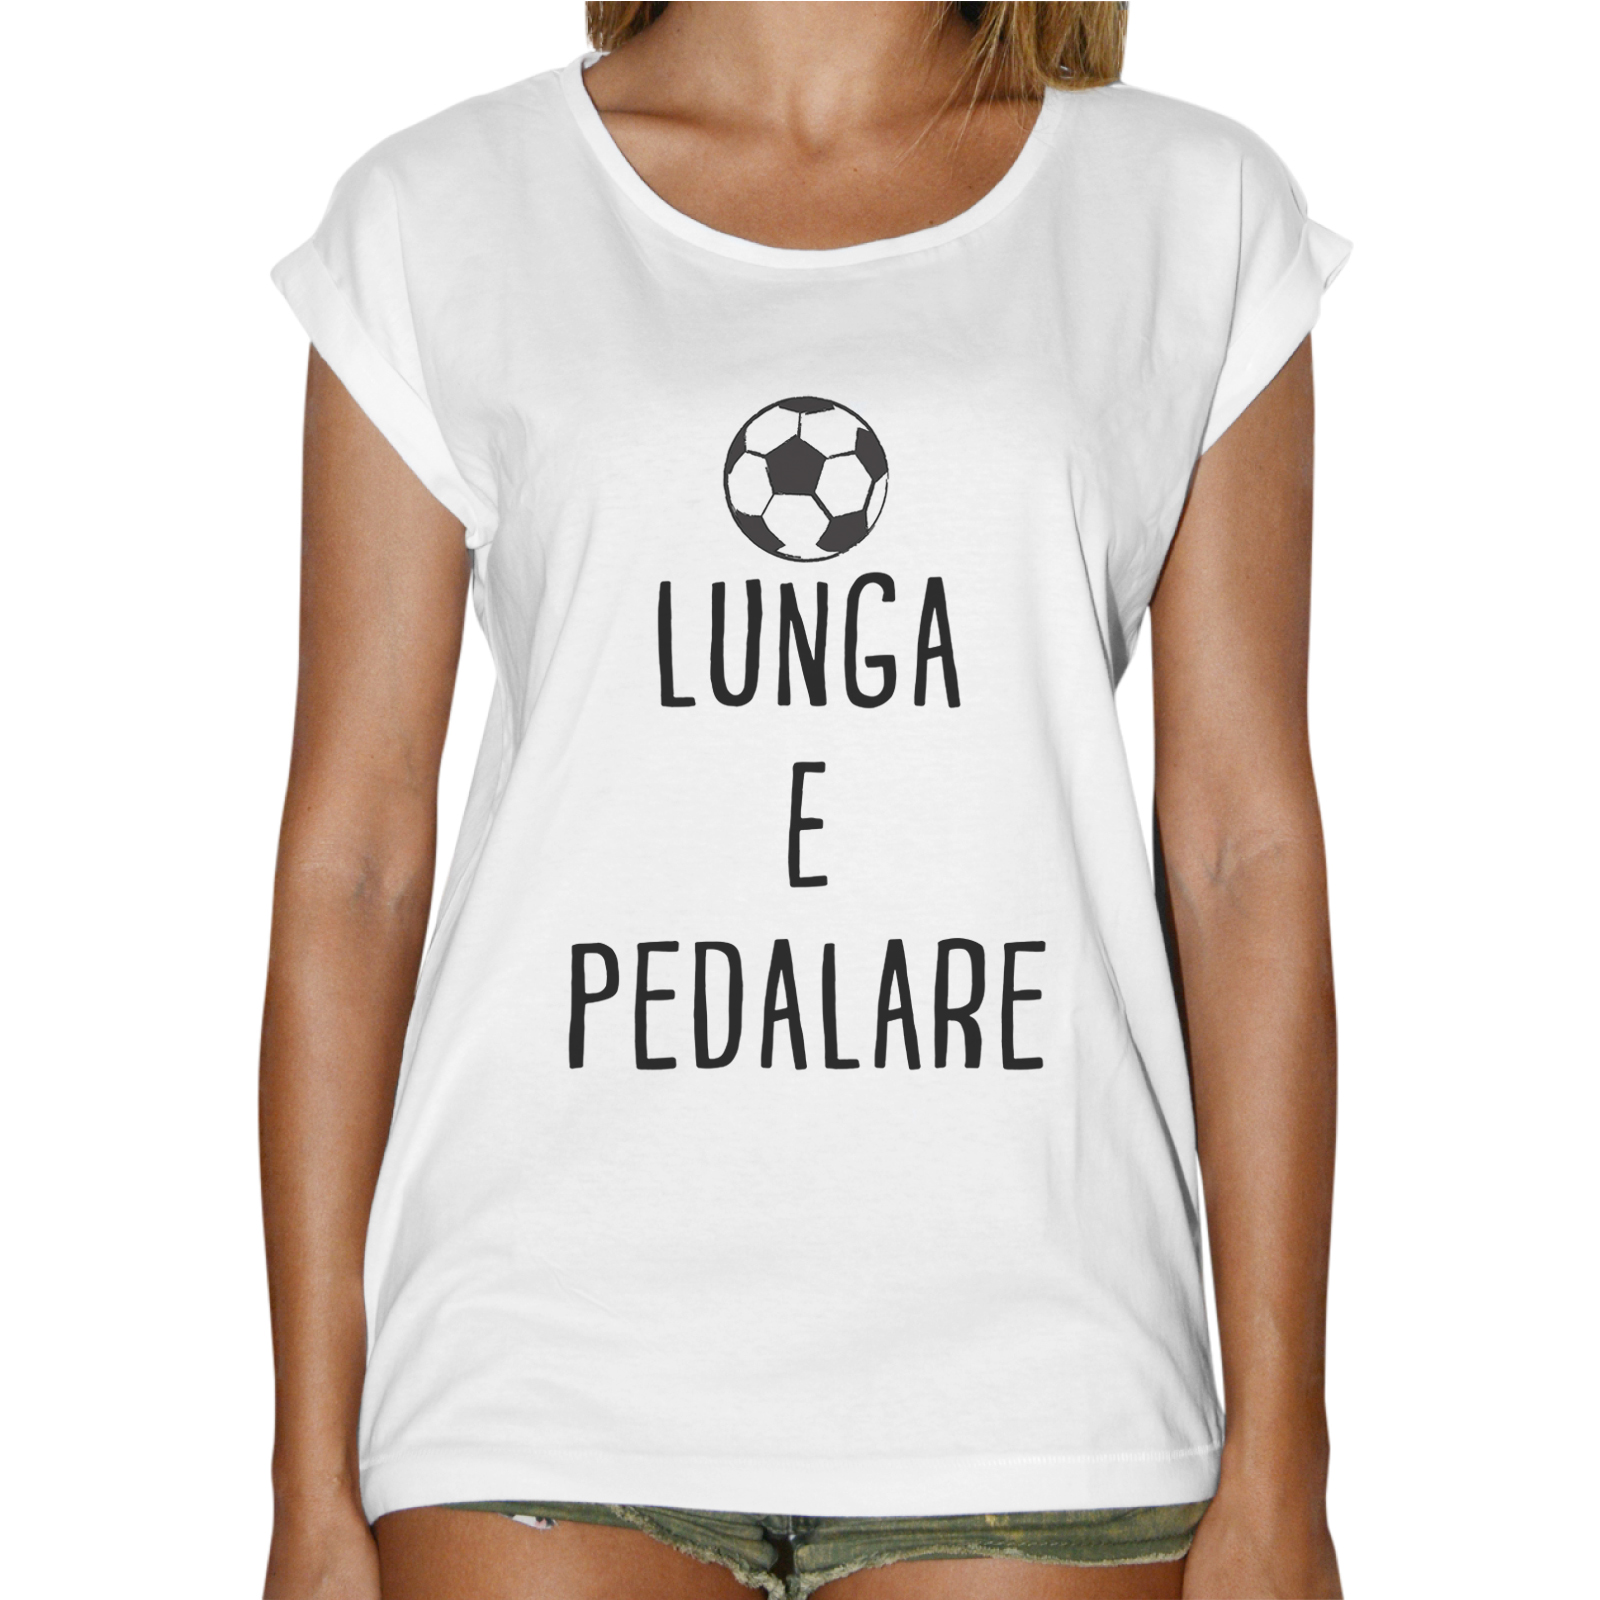 T-Shirt Donna Fashion PALLA LUNGA E PEDALARE